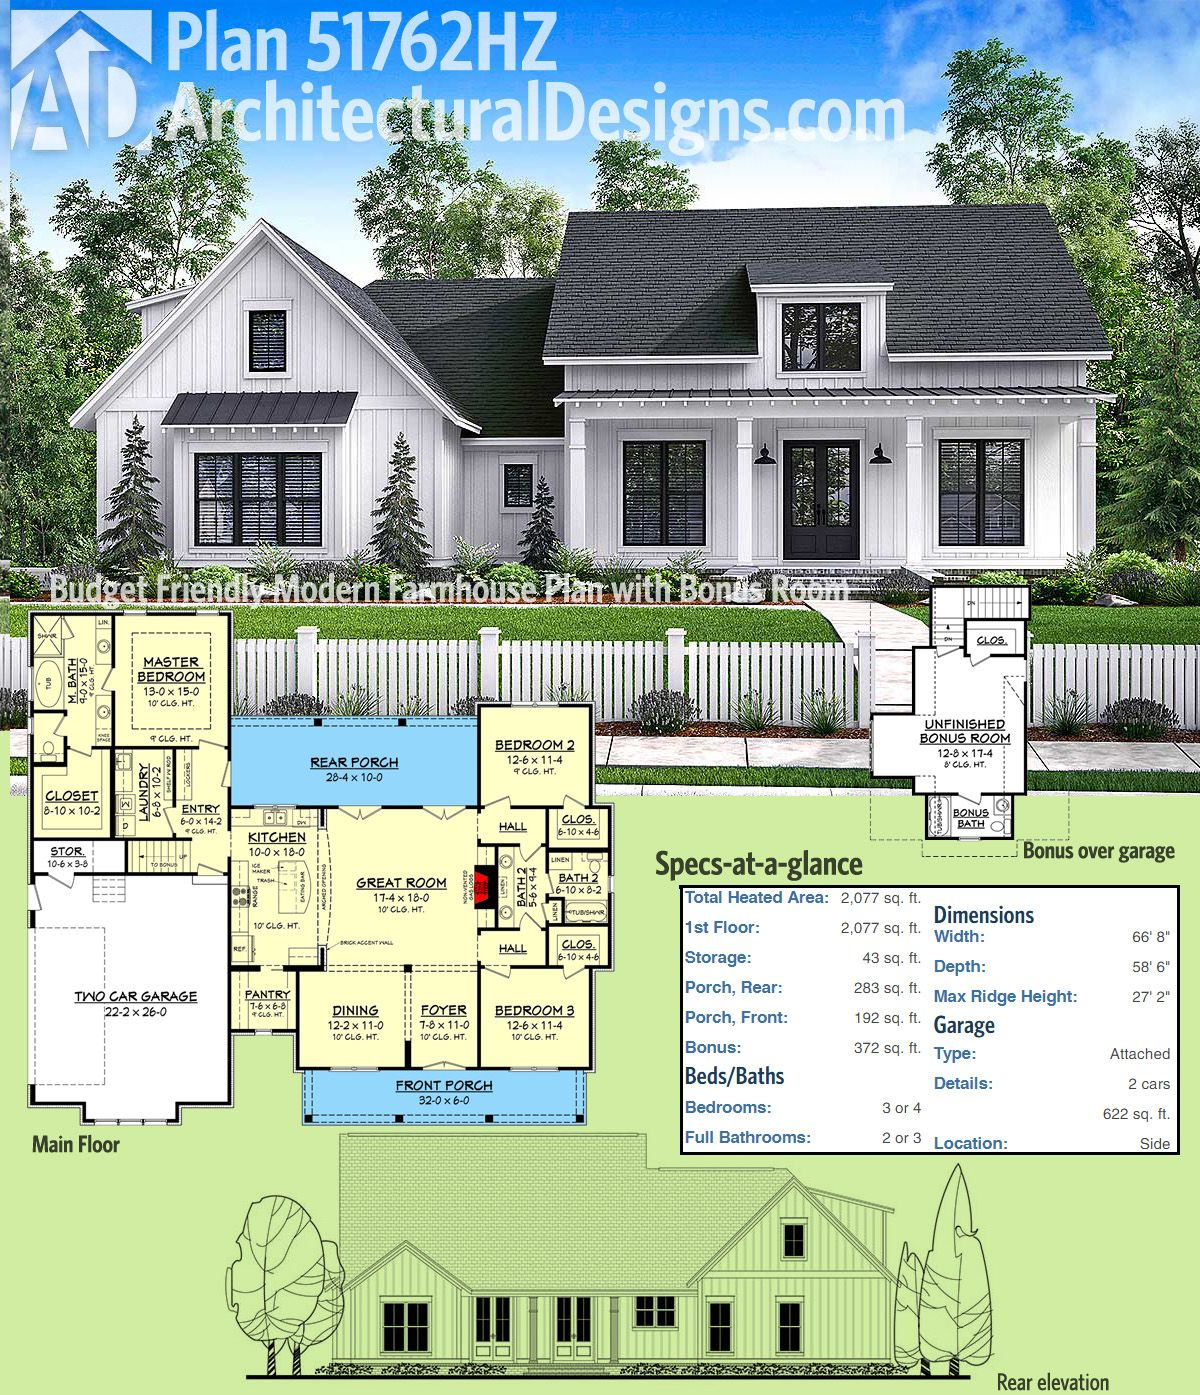 Plan 51762hz budget friendly modern farmhouse plan with for Architecture design for home plans